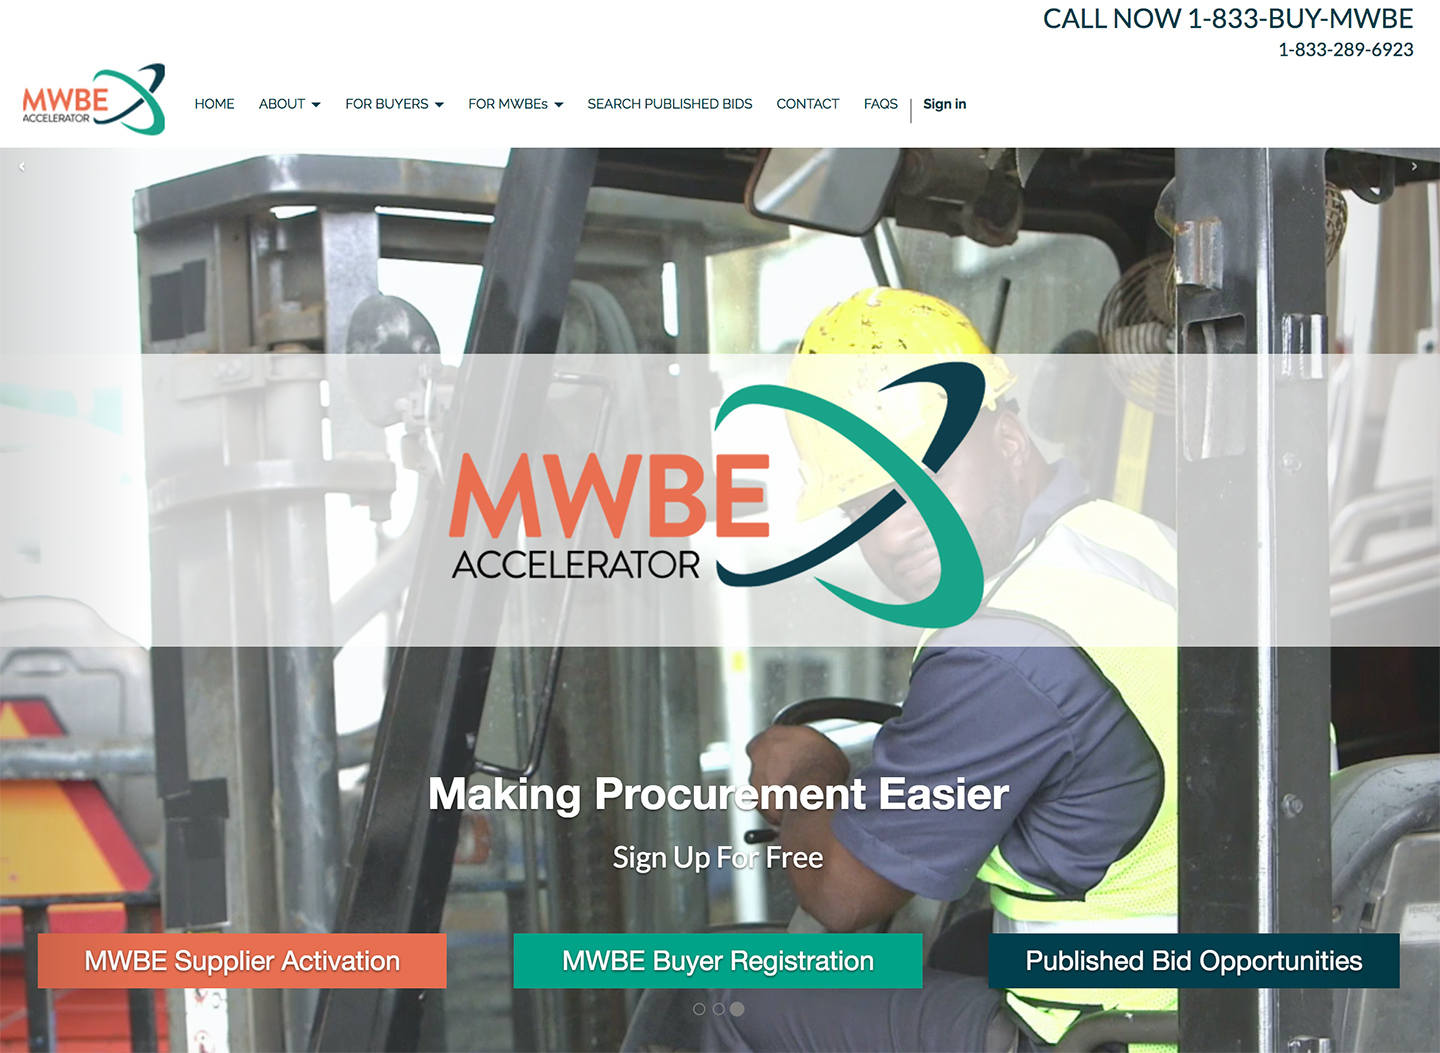 Harlem Commonwealth Council MWBE Accelerator: MWBE Accelerator Homepage